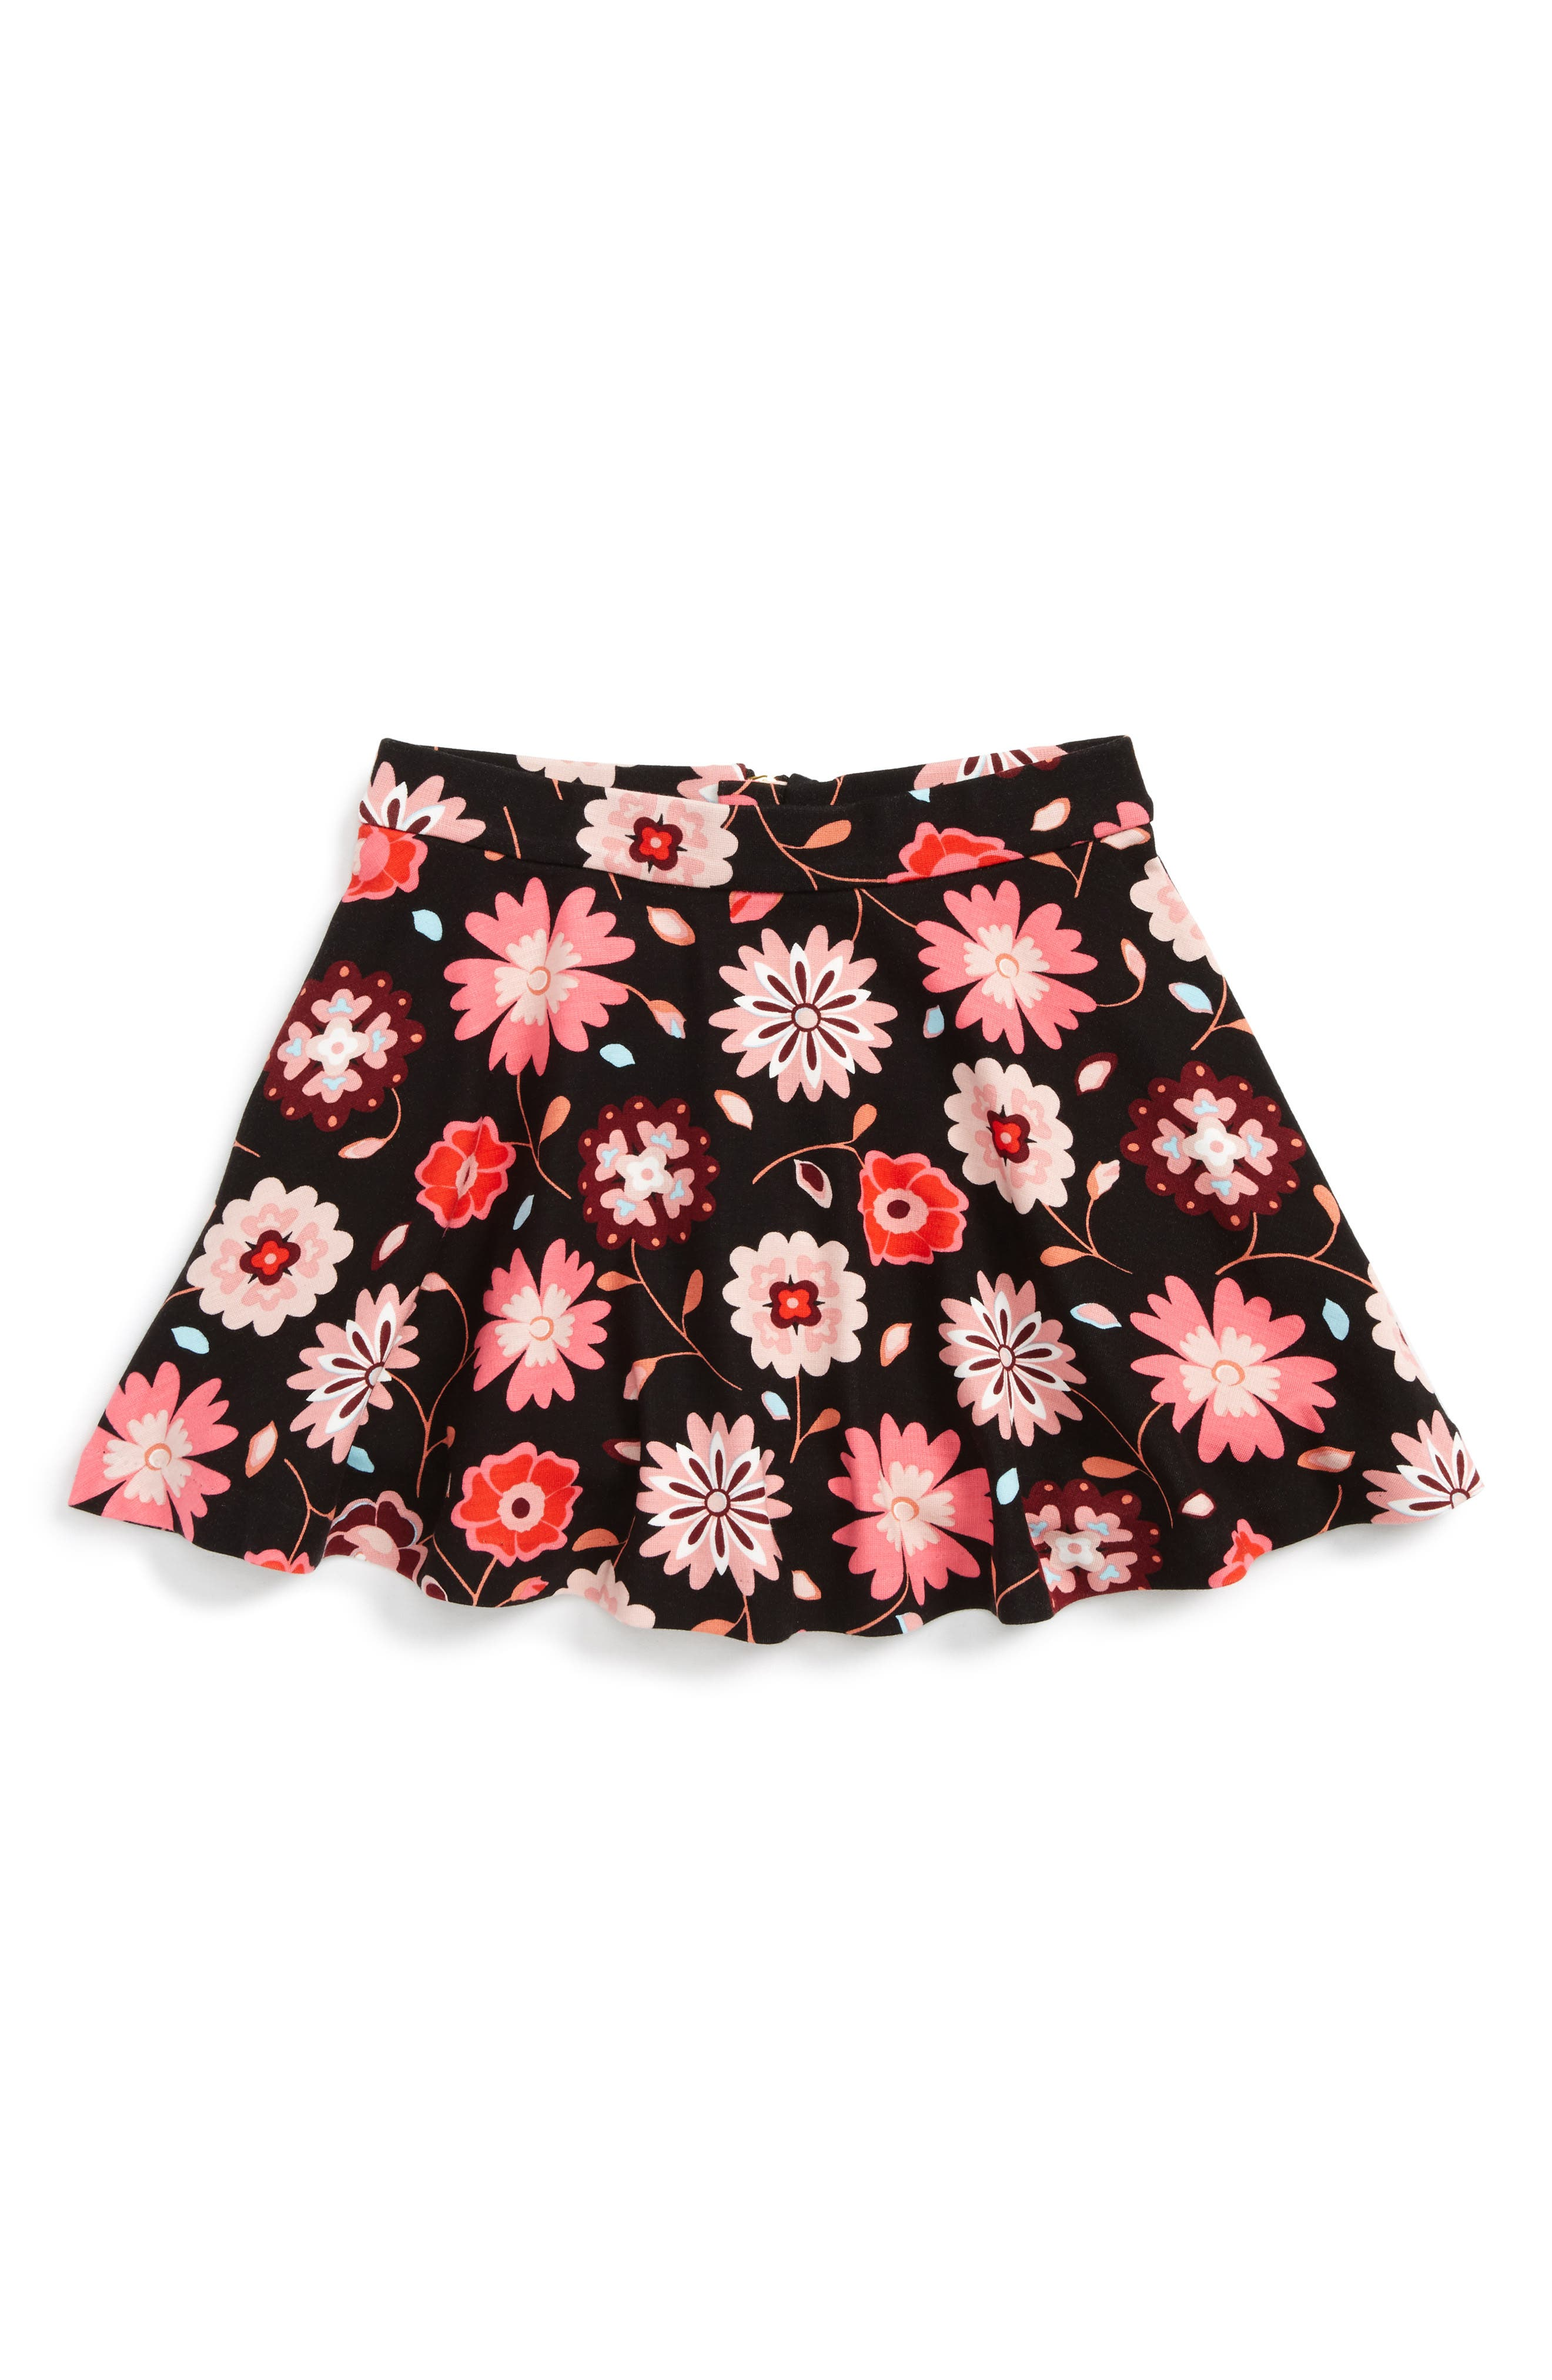 kate spade new york skater skirt (Toddler Girls & Little Girls)